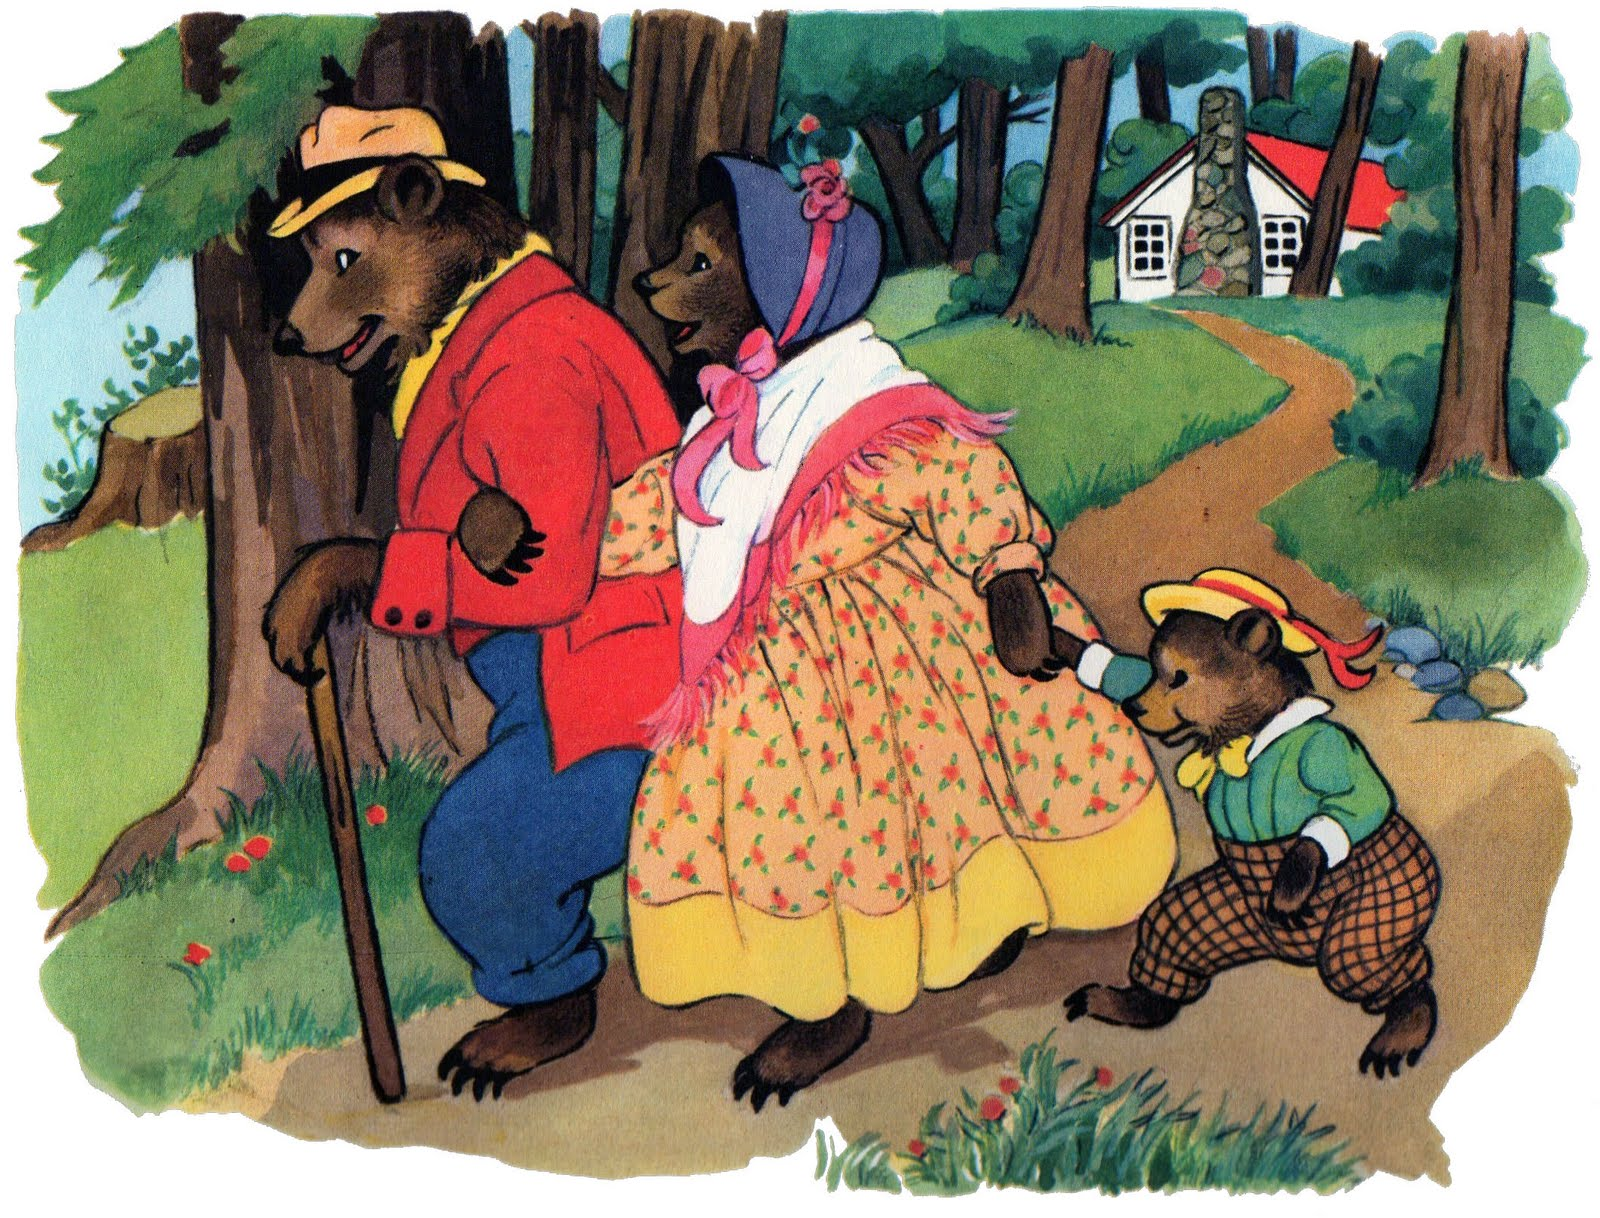 Uncategorized Three Little Bear googoogallery obscure scan sunday the story of goldilocks and for now lets focus on an old favorite all about a little messy blonde girl three very hungry bears